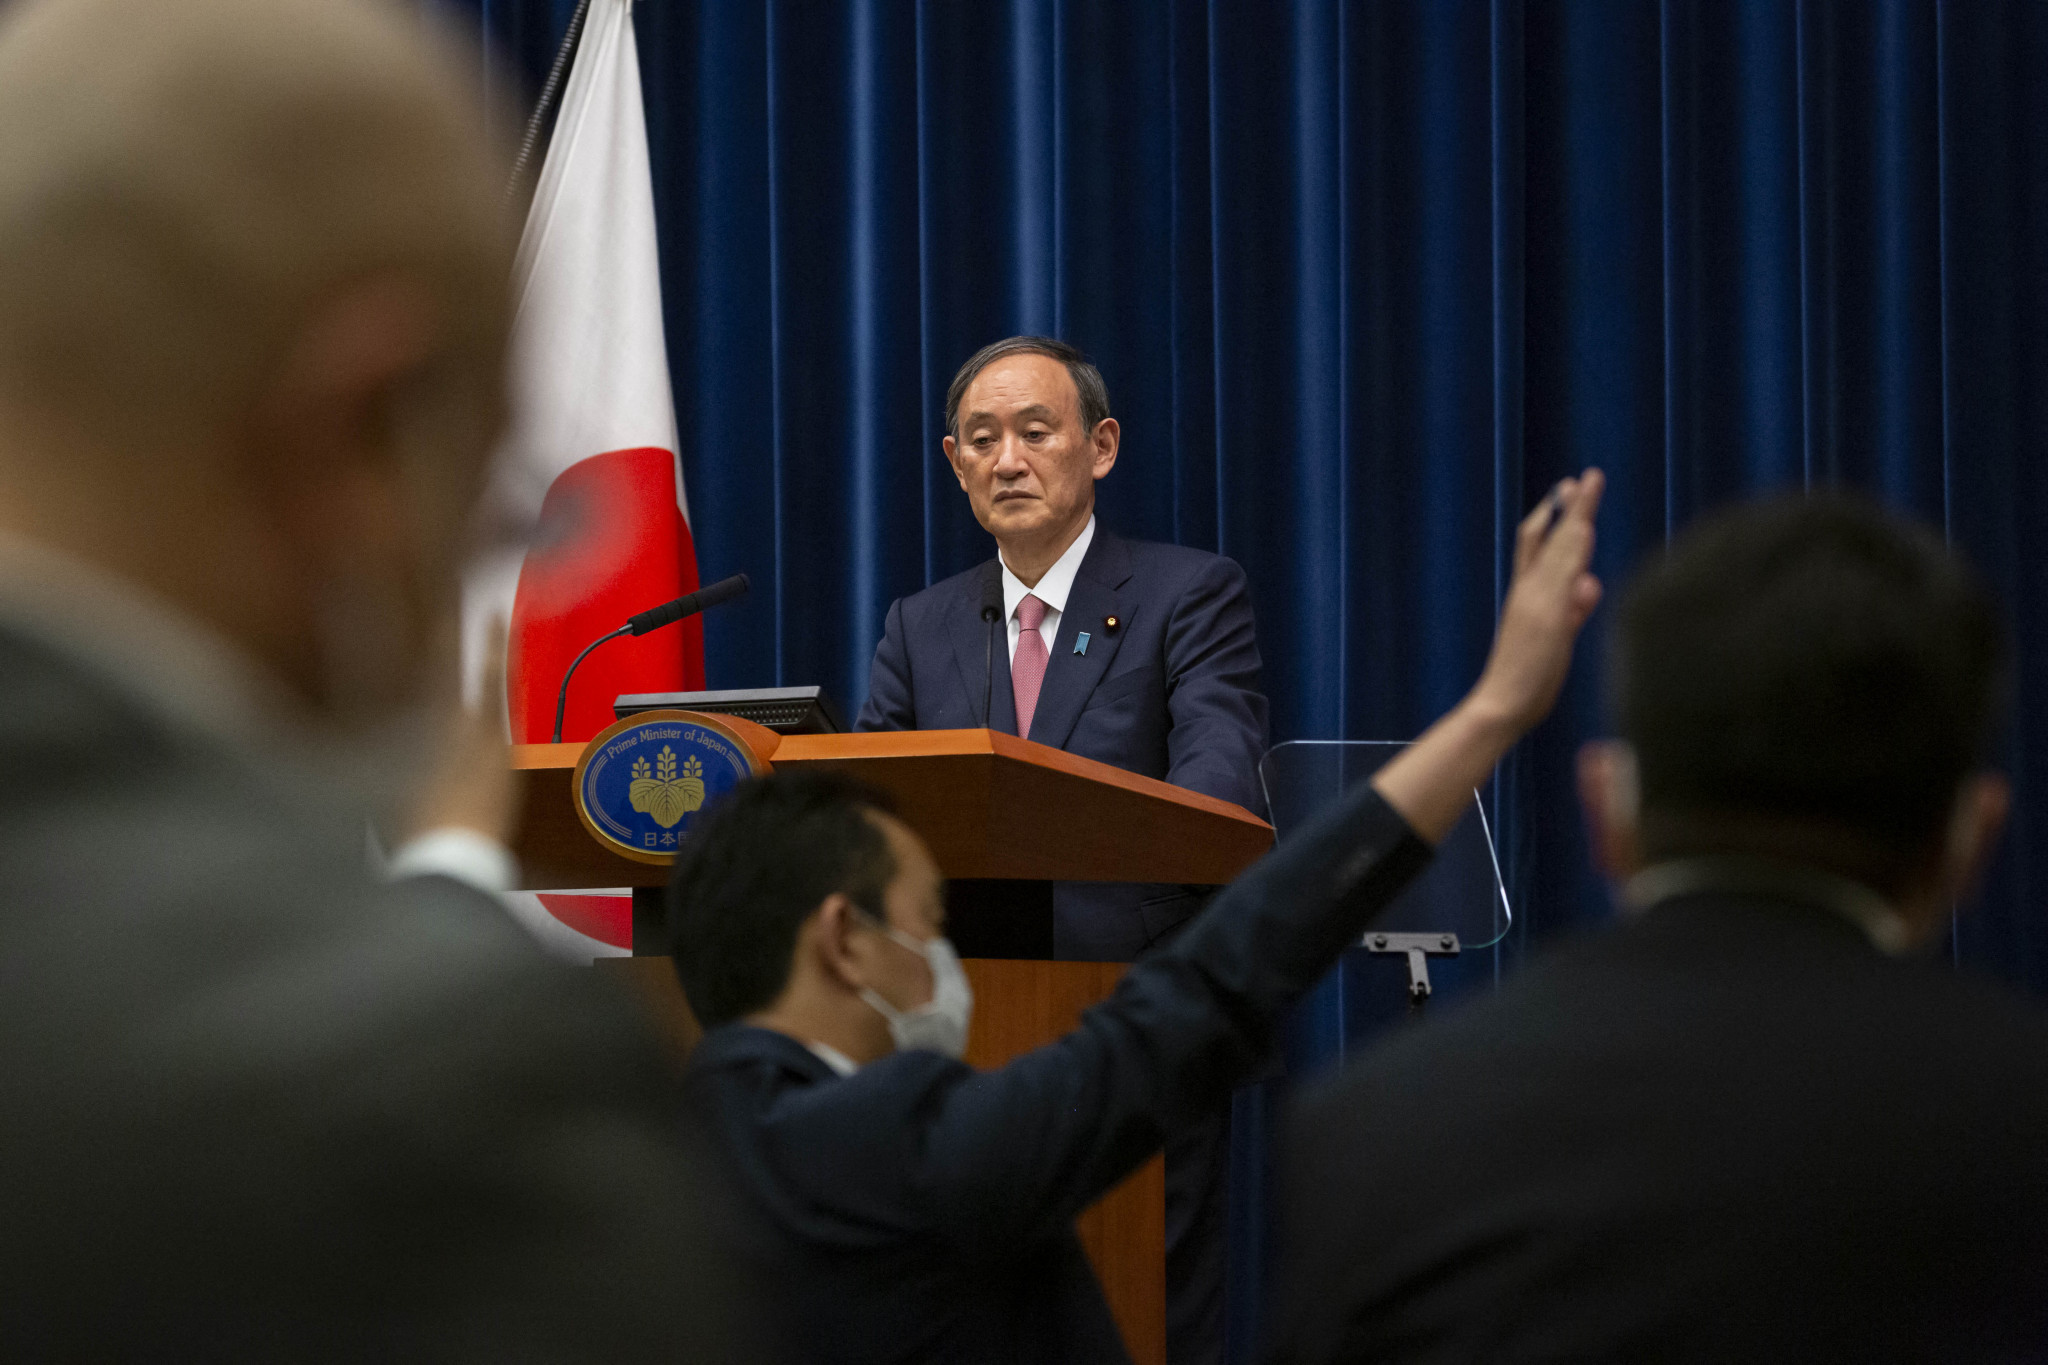 Prime Minister Yoshihide Suga is facing criticism for the Government's handling of the pandemic, with 71.5 per cent of those surveyed dissatisfied with the response ©Getty Images